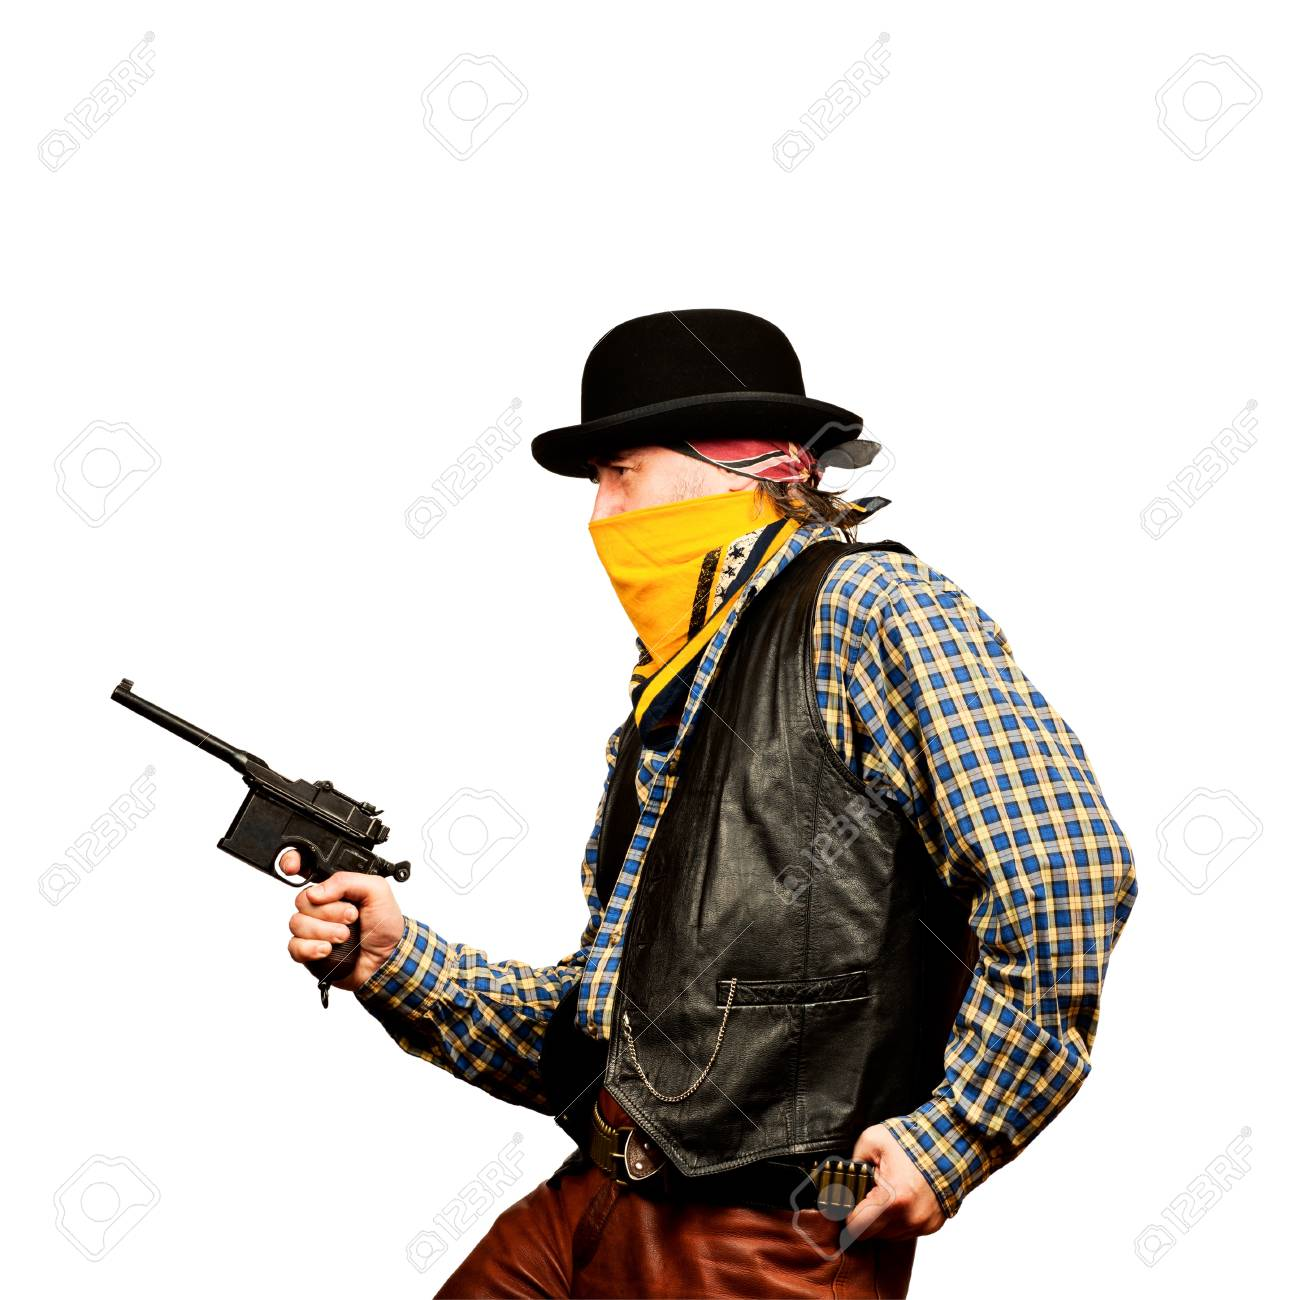 bad guy robs bank on white square background Stock Photo - 19822072